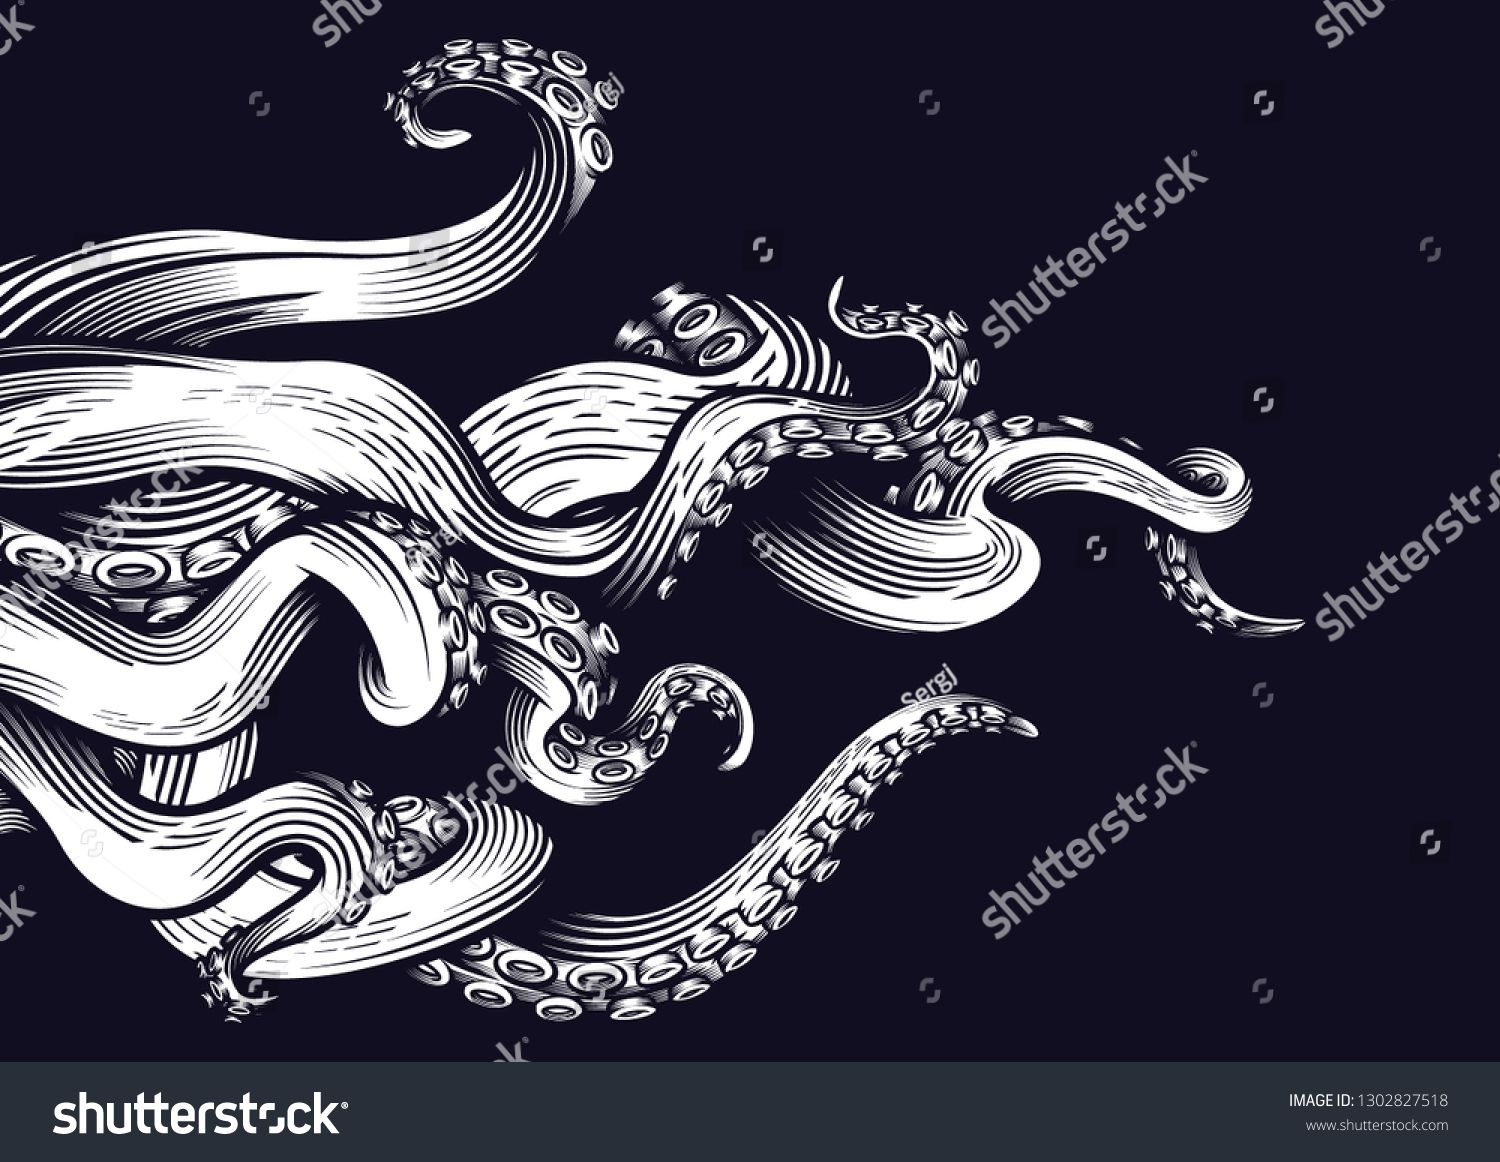 Tentacles of an octopus. Hand drawn vector illustration in.